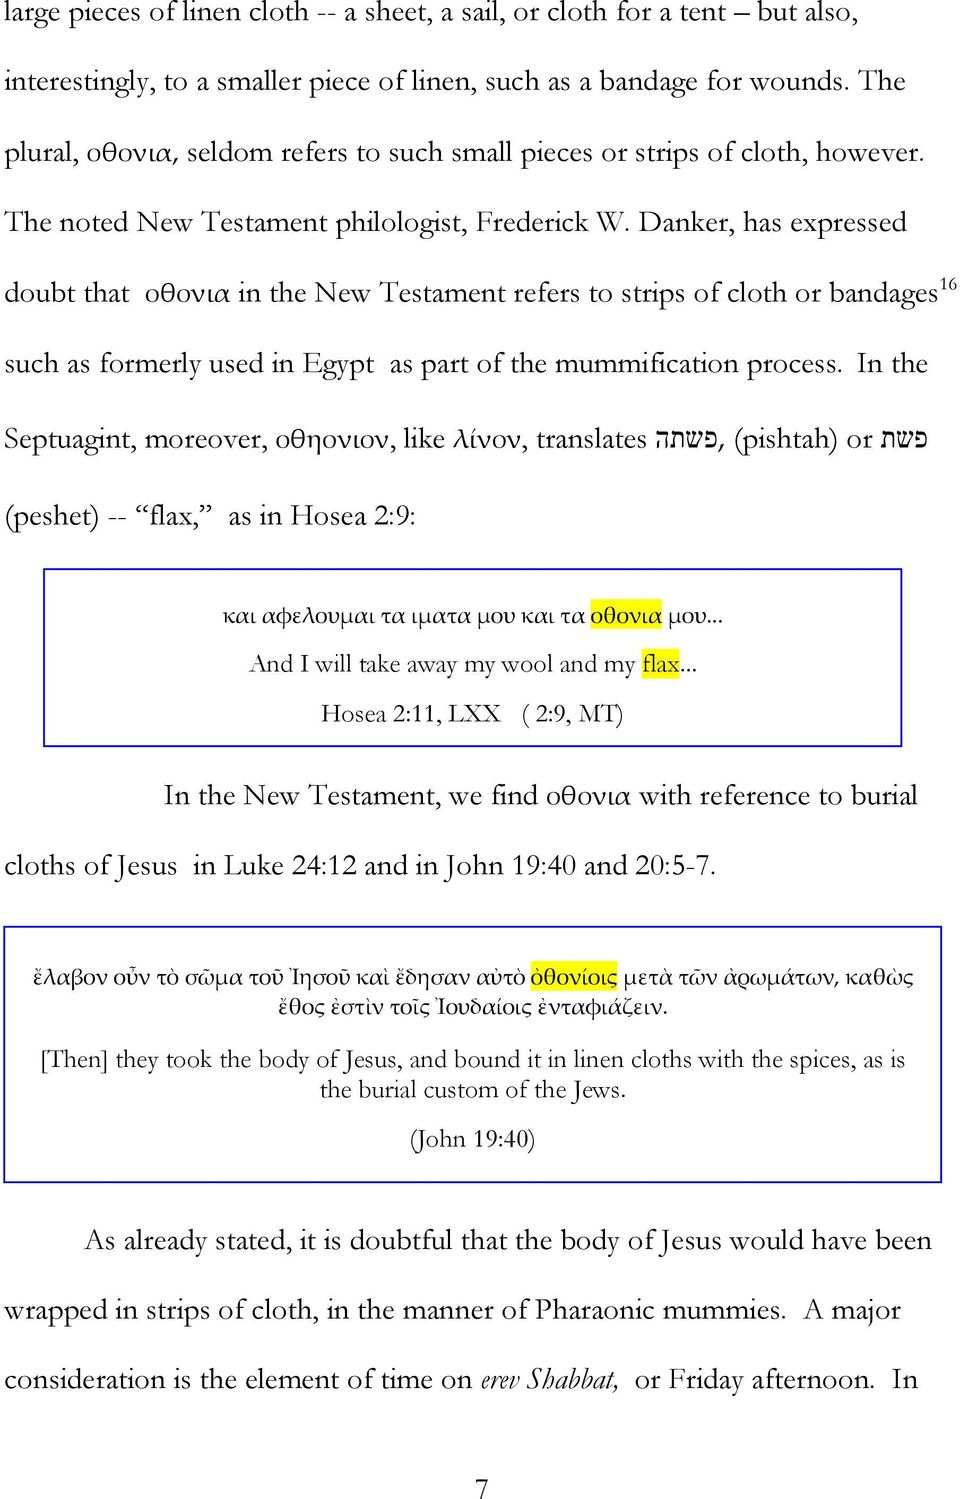 Danker, has expressed doubt that οθονια in the New Testament refers to strips of cloth or bandages 16 such as formerly used in Egypt as part of the mummification process.